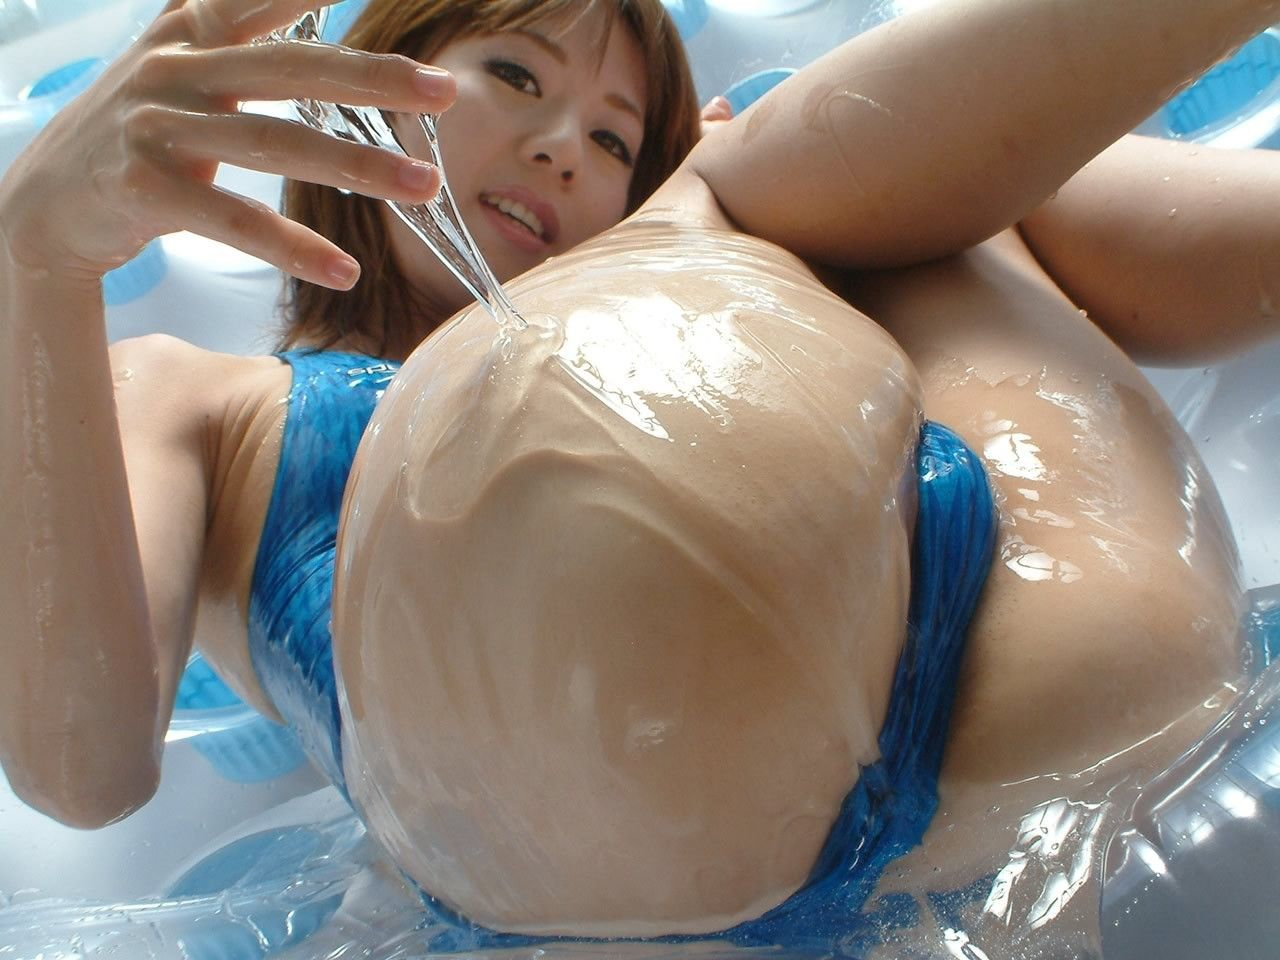 Slime girl boobs photos hentia picture